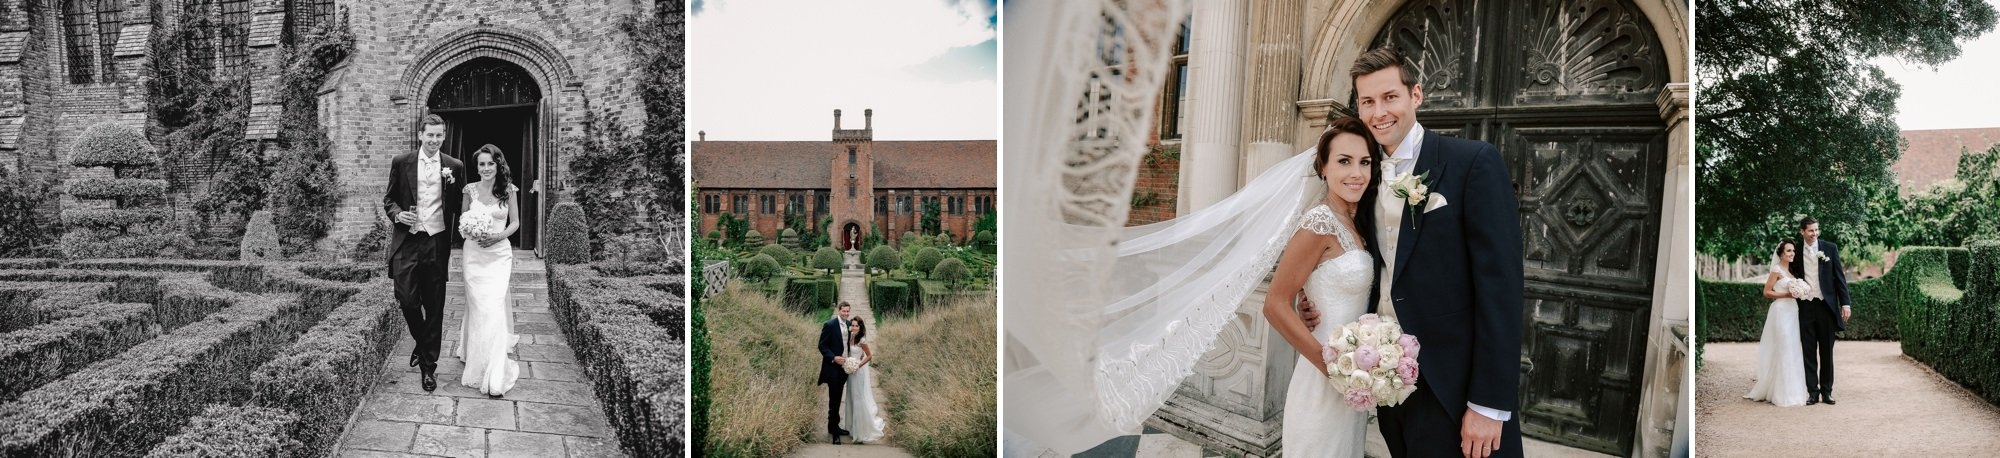 Hatfield House Old Palace Wedding